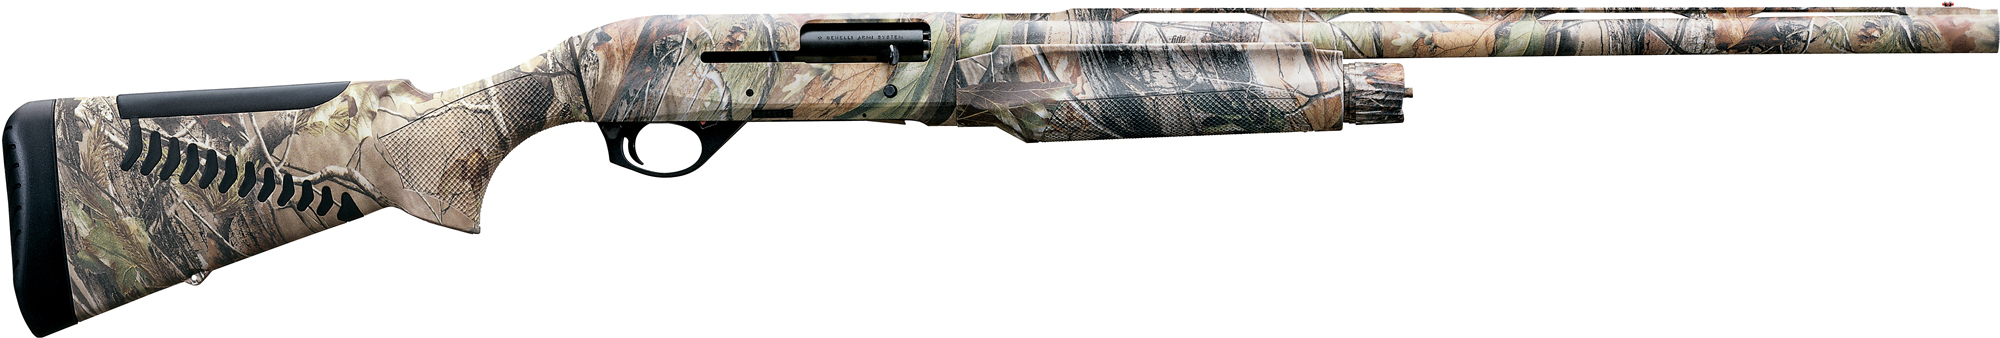 Benelli m2 stock options